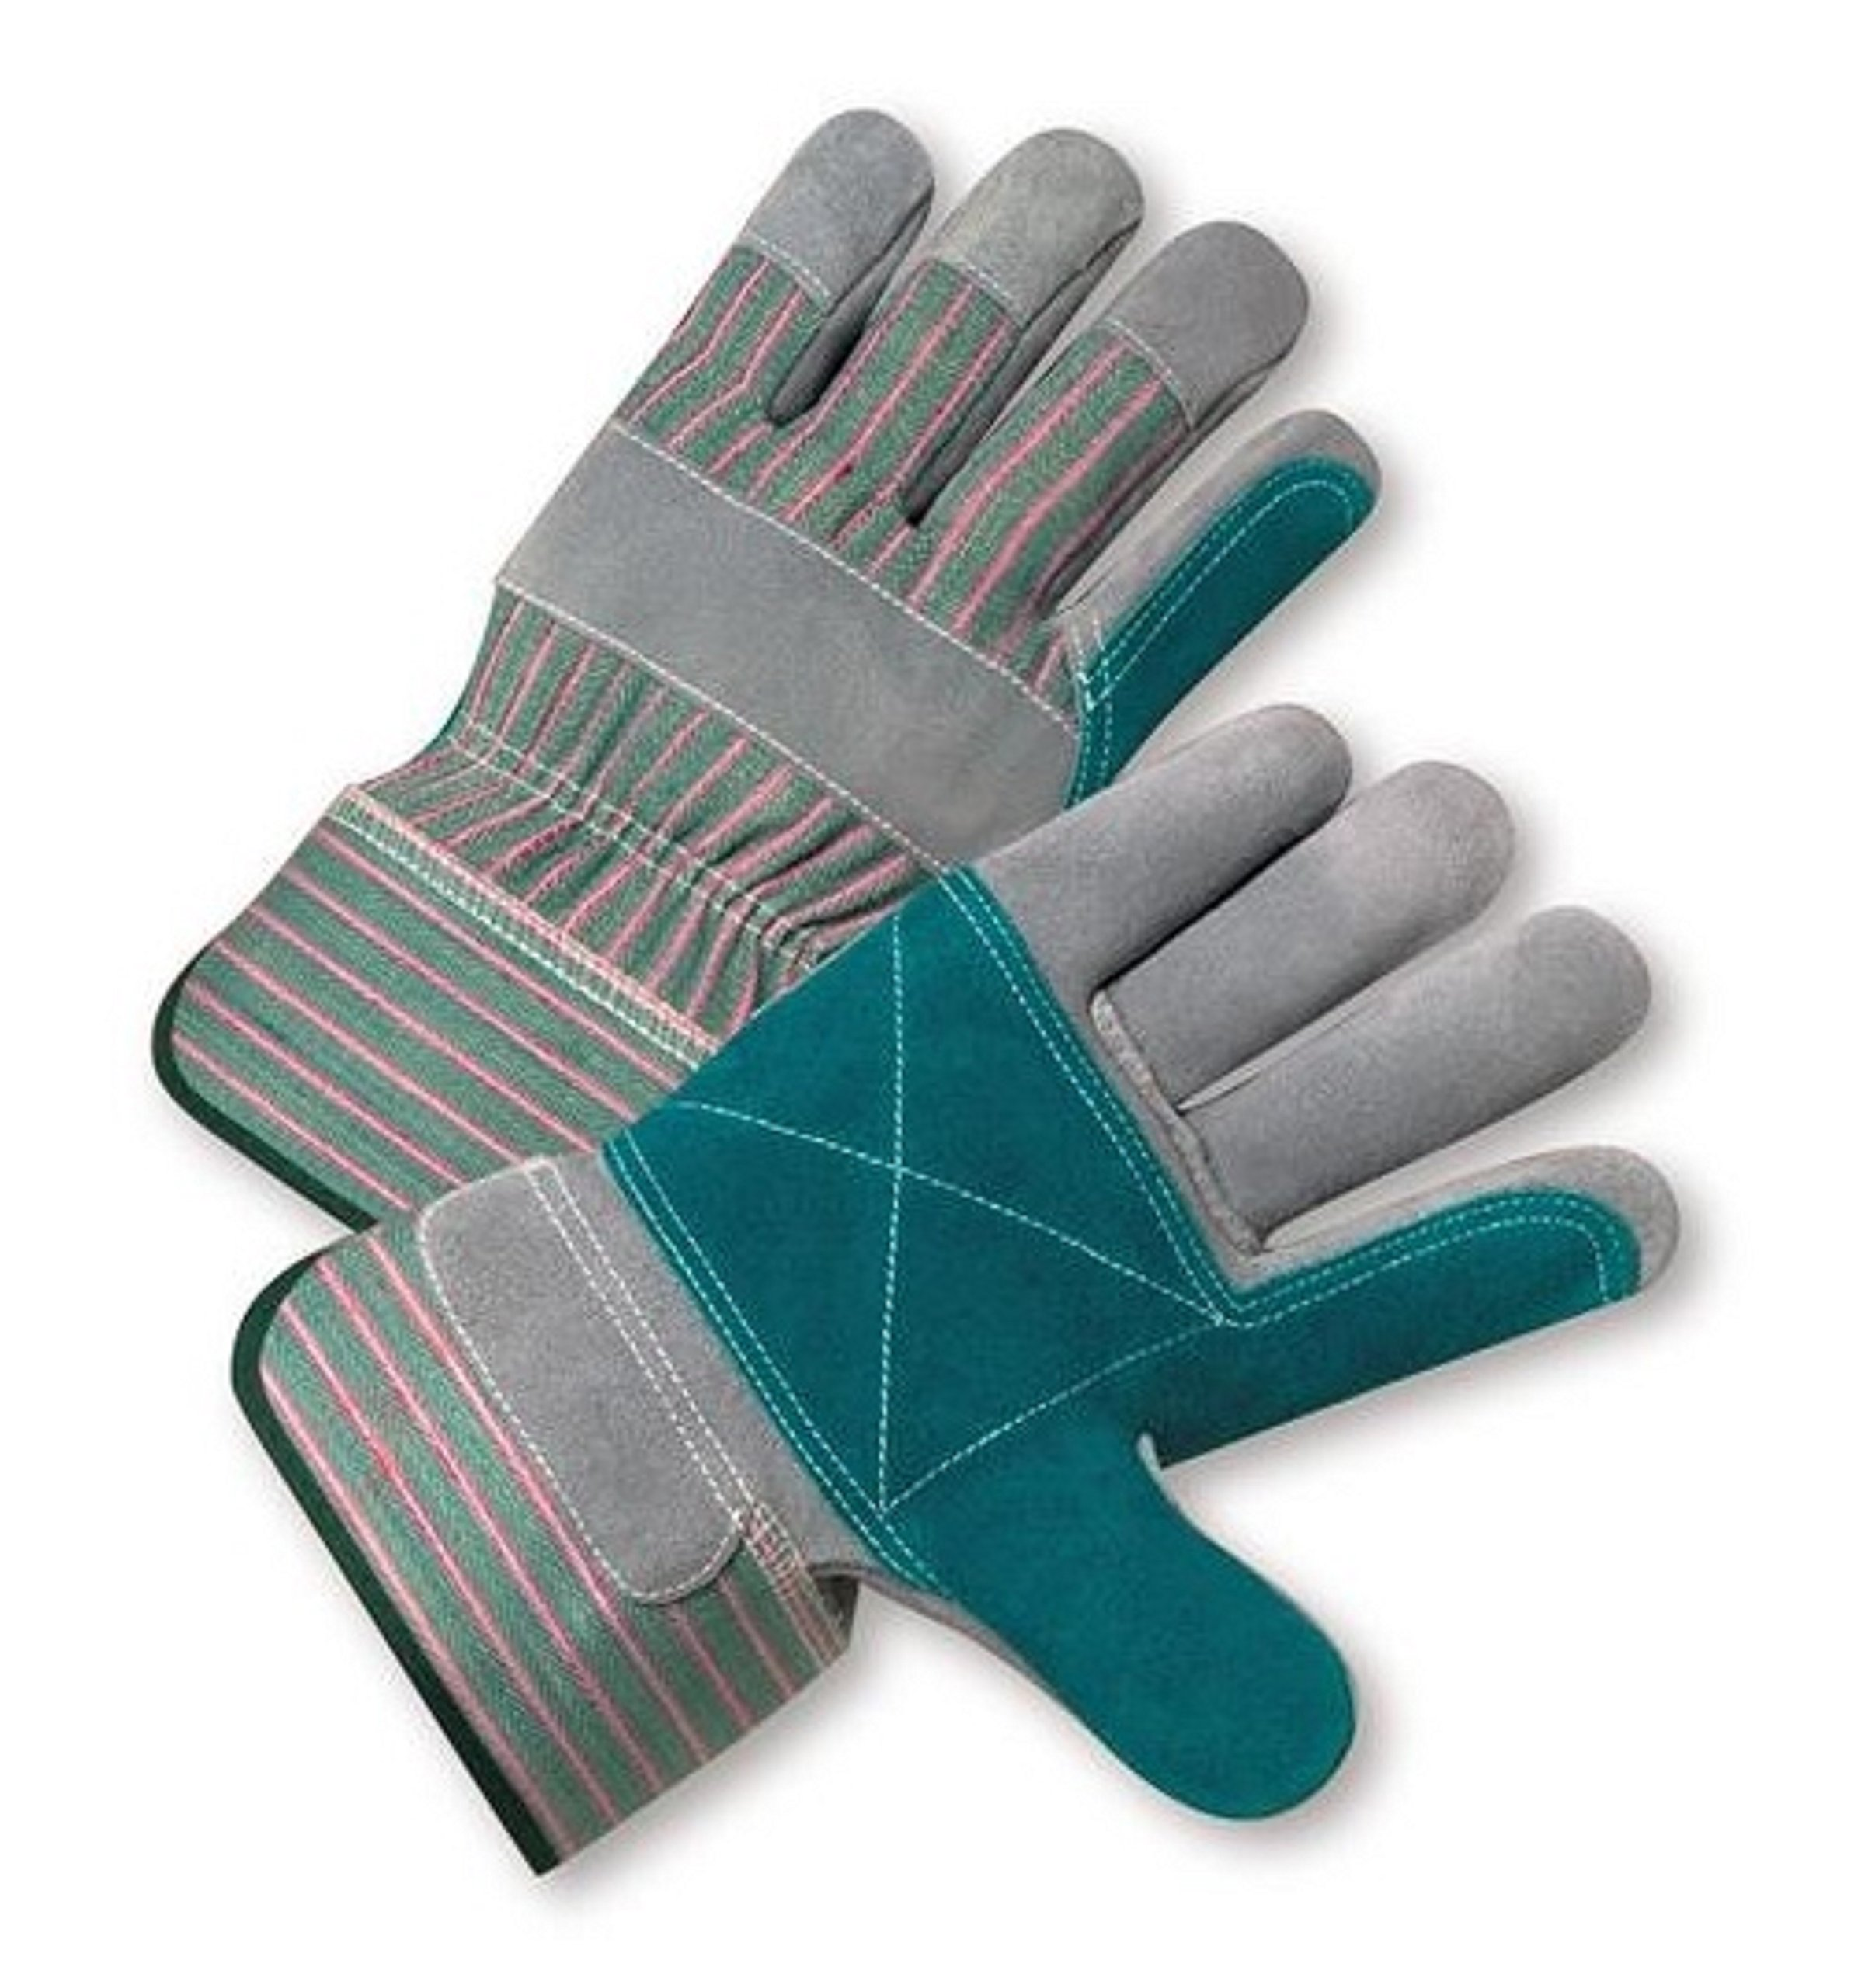 West Chester 500DP Rubberized Safety Cuff Leather Glove, 10.5'' Length, Large, Gray (Case of 72 Pairs) by West Chester Protective Gear (Image #1)